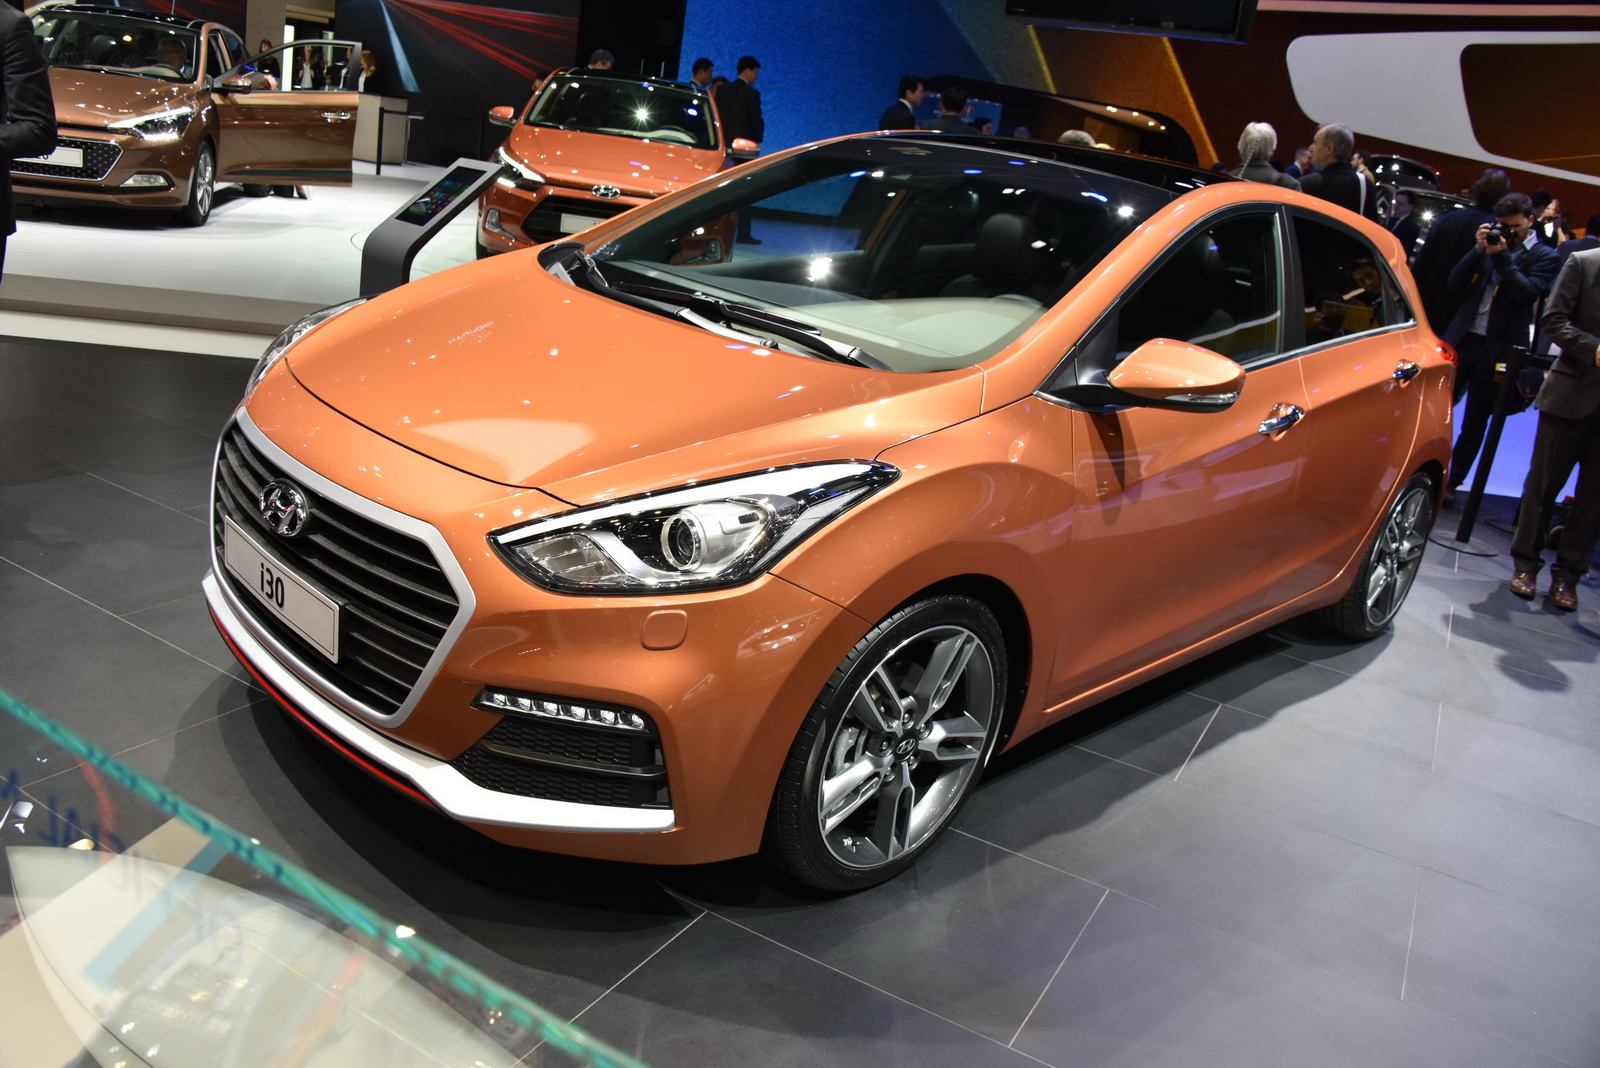 facelifted hyundai i30 shows its face 183hp turbo petrol a welcome addition carscoops. Black Bedroom Furniture Sets. Home Design Ideas